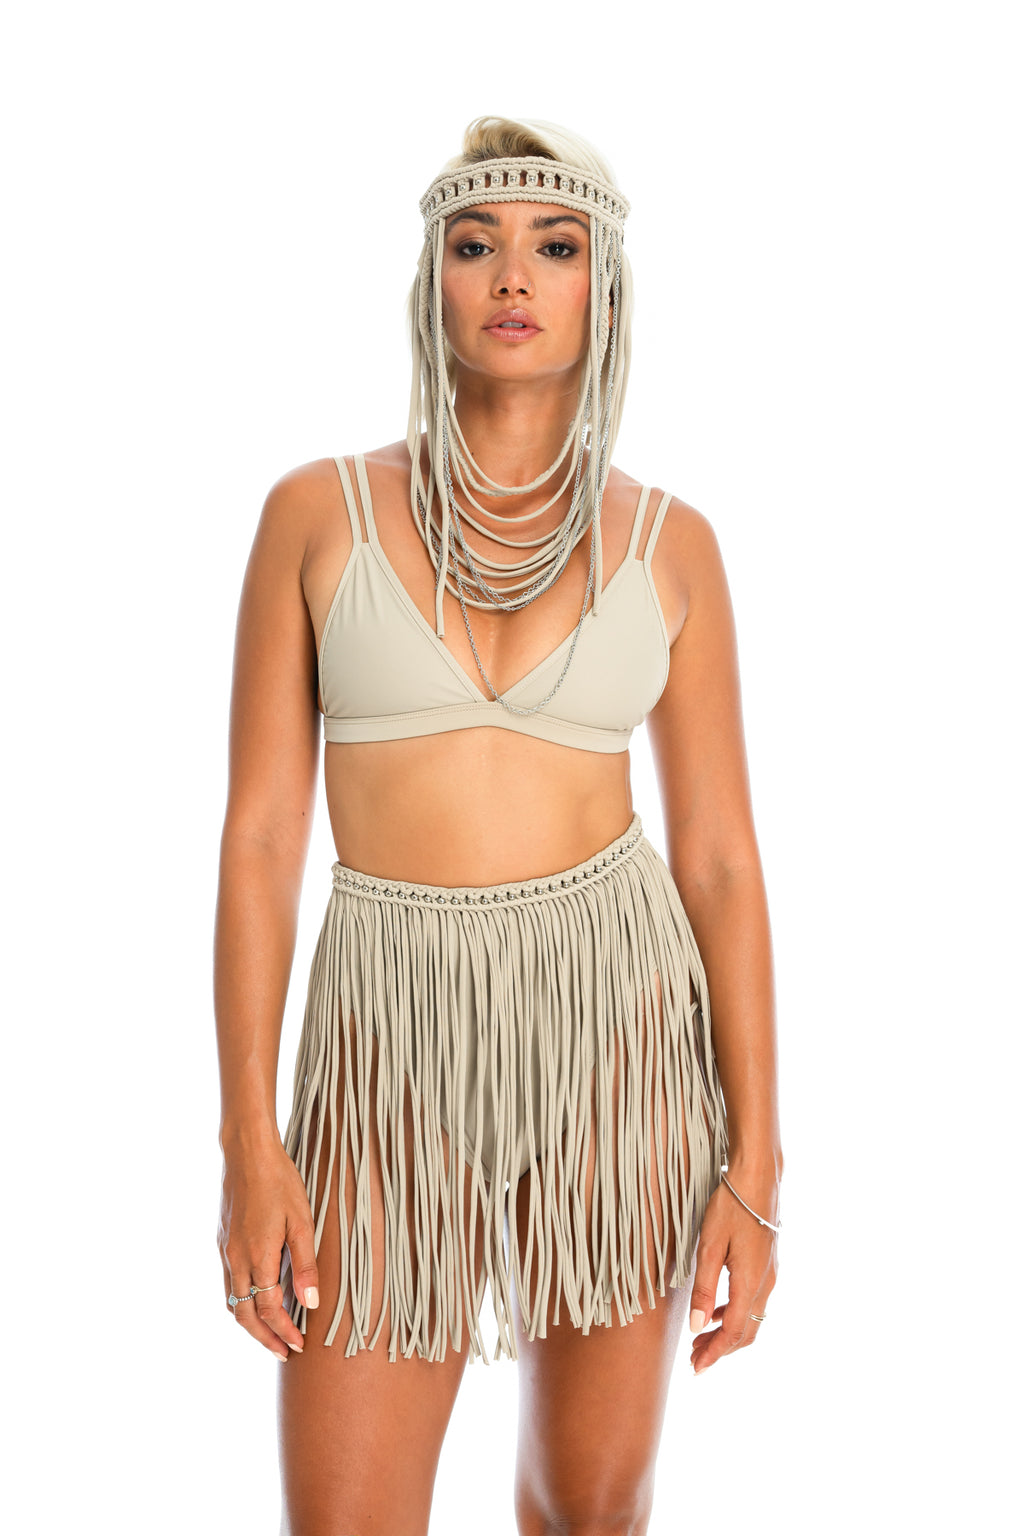 Nude hand-crafted macrame fringe skirt, burning man skirt